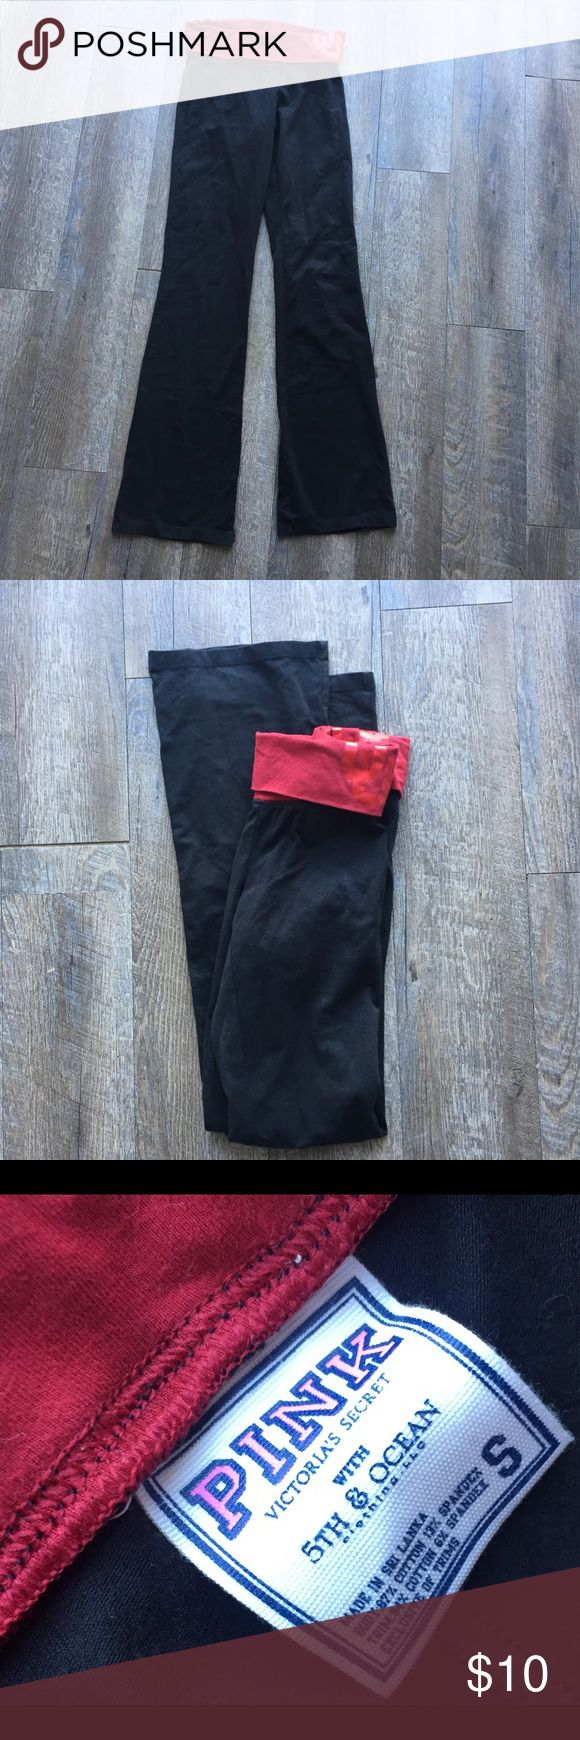 VS PINK Oklahoma university yoga pants small Victoria's Secret PINK bell bottom YOGA pants for the sports team Oklahoma university OU. Petty great condition. In a size small. Smoke free home with pets PINK Victoria's Secret Pants Leggings